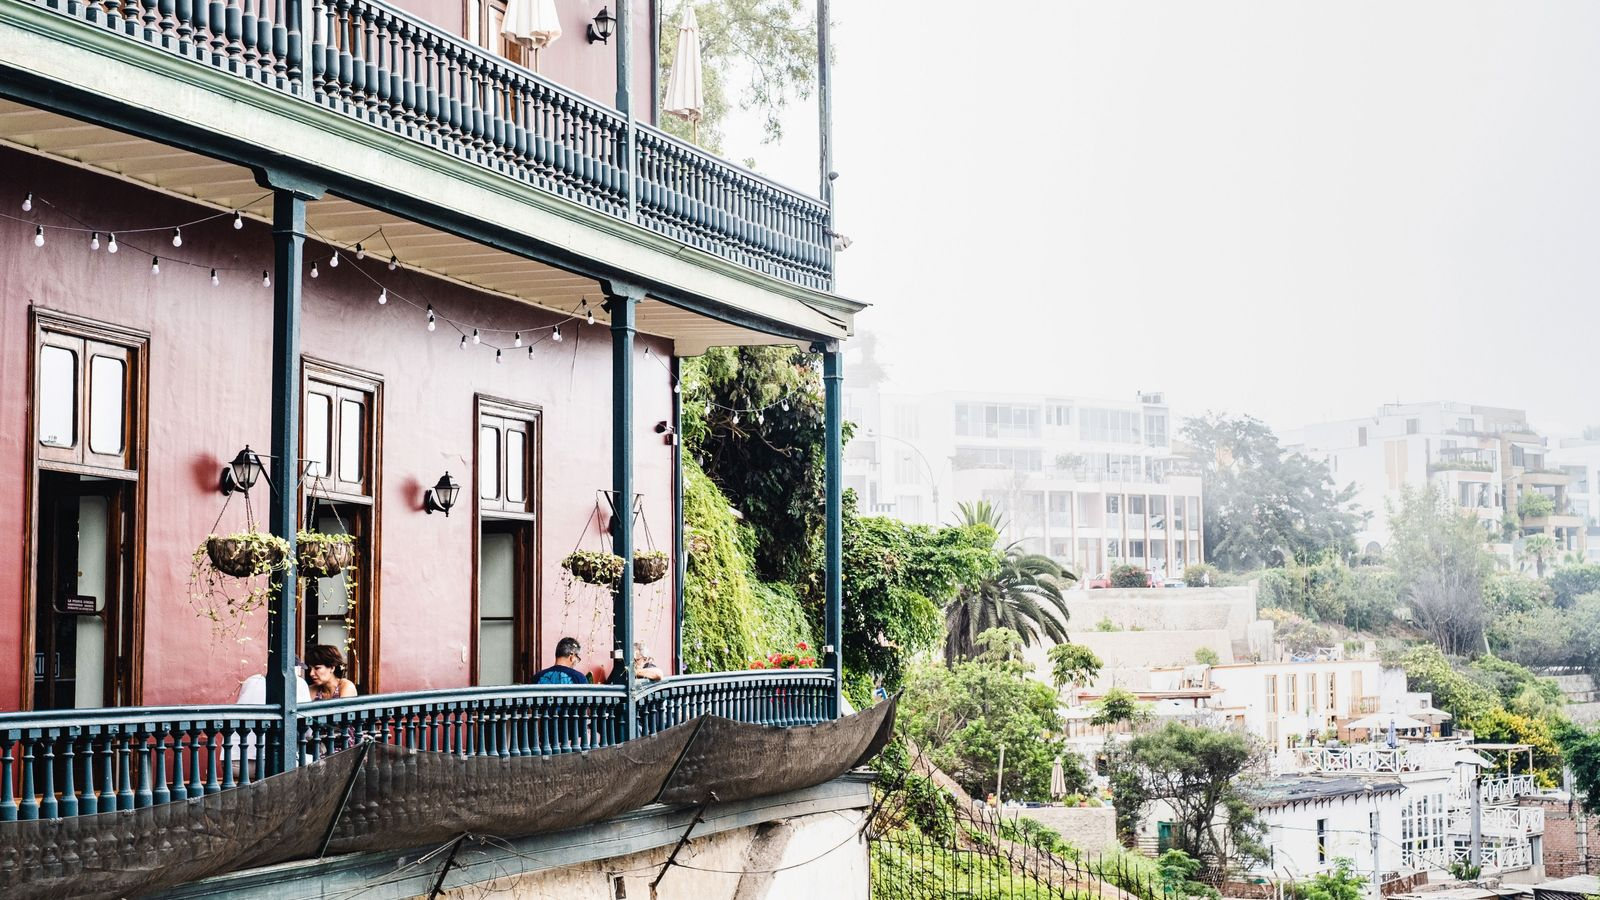 Lima's revival has kicked off a wider cultural renaissance that today makes the city one of ...